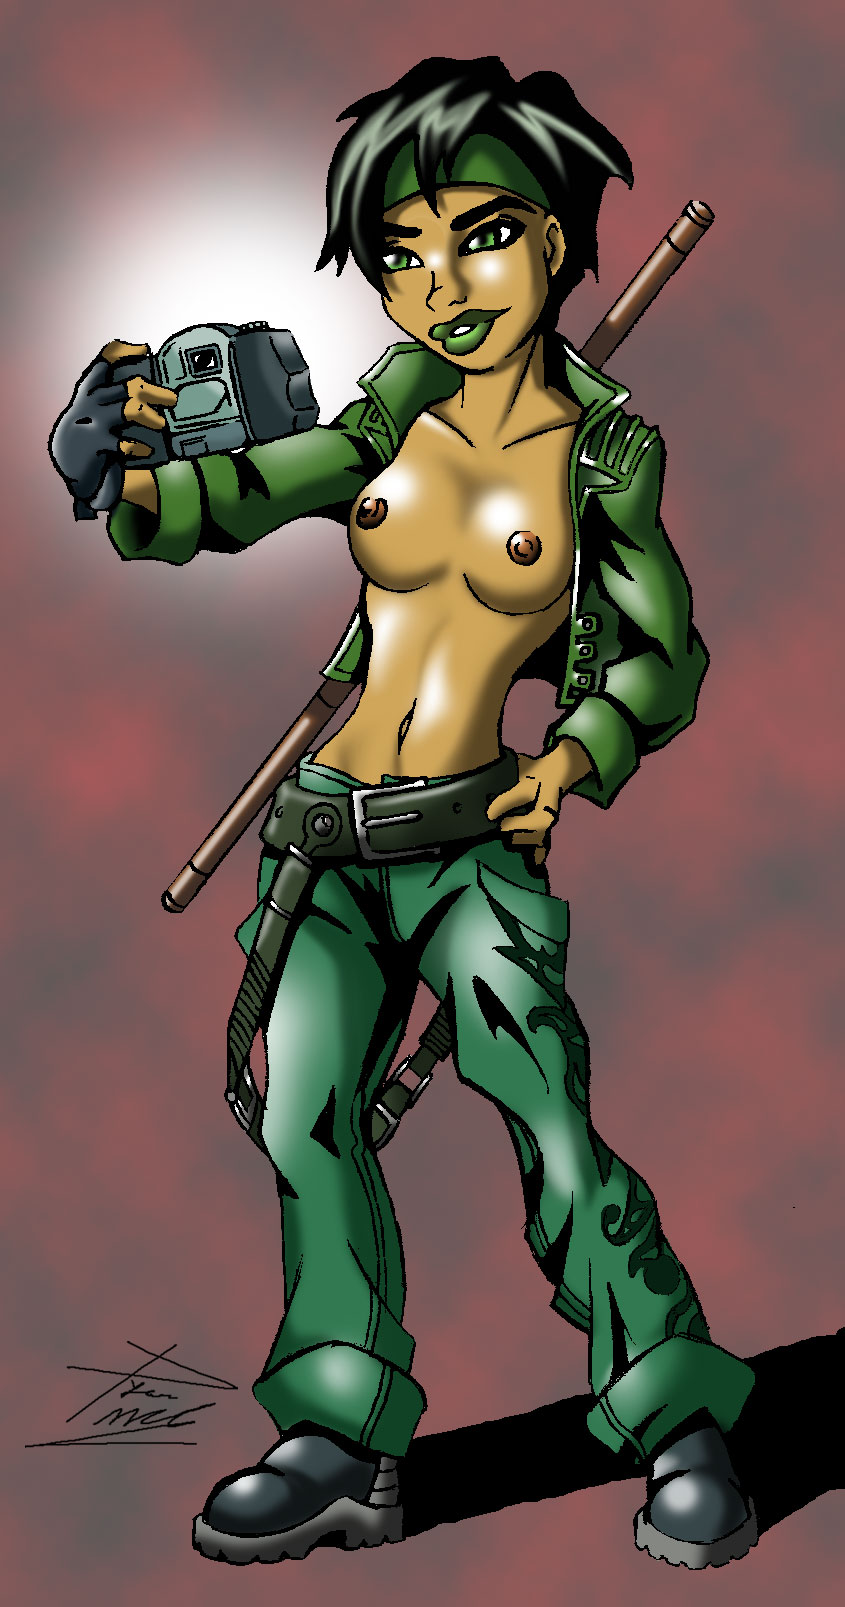 green ham and eggs michellee Baron of hell vs hell knight